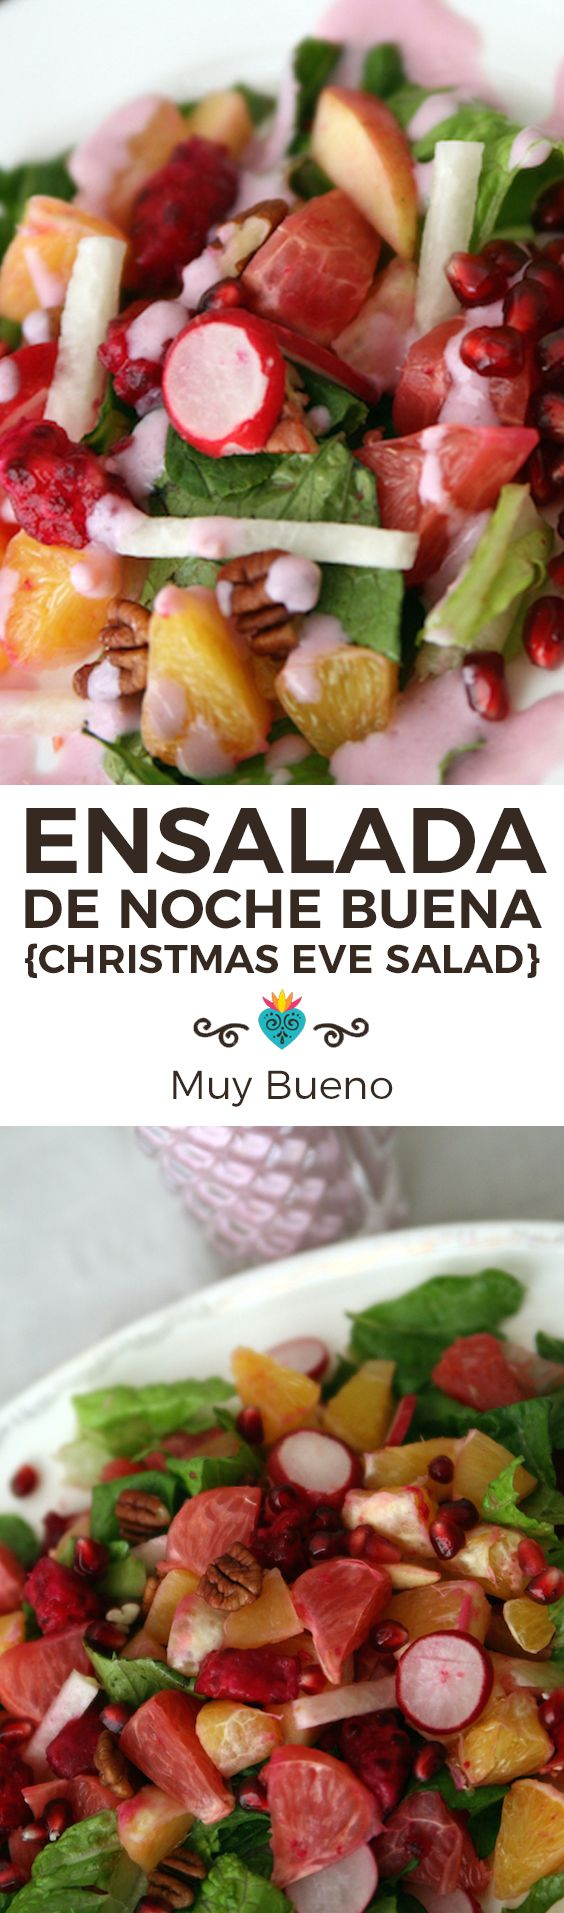 Noche Buena Refers To Christmas Eve In Mexico